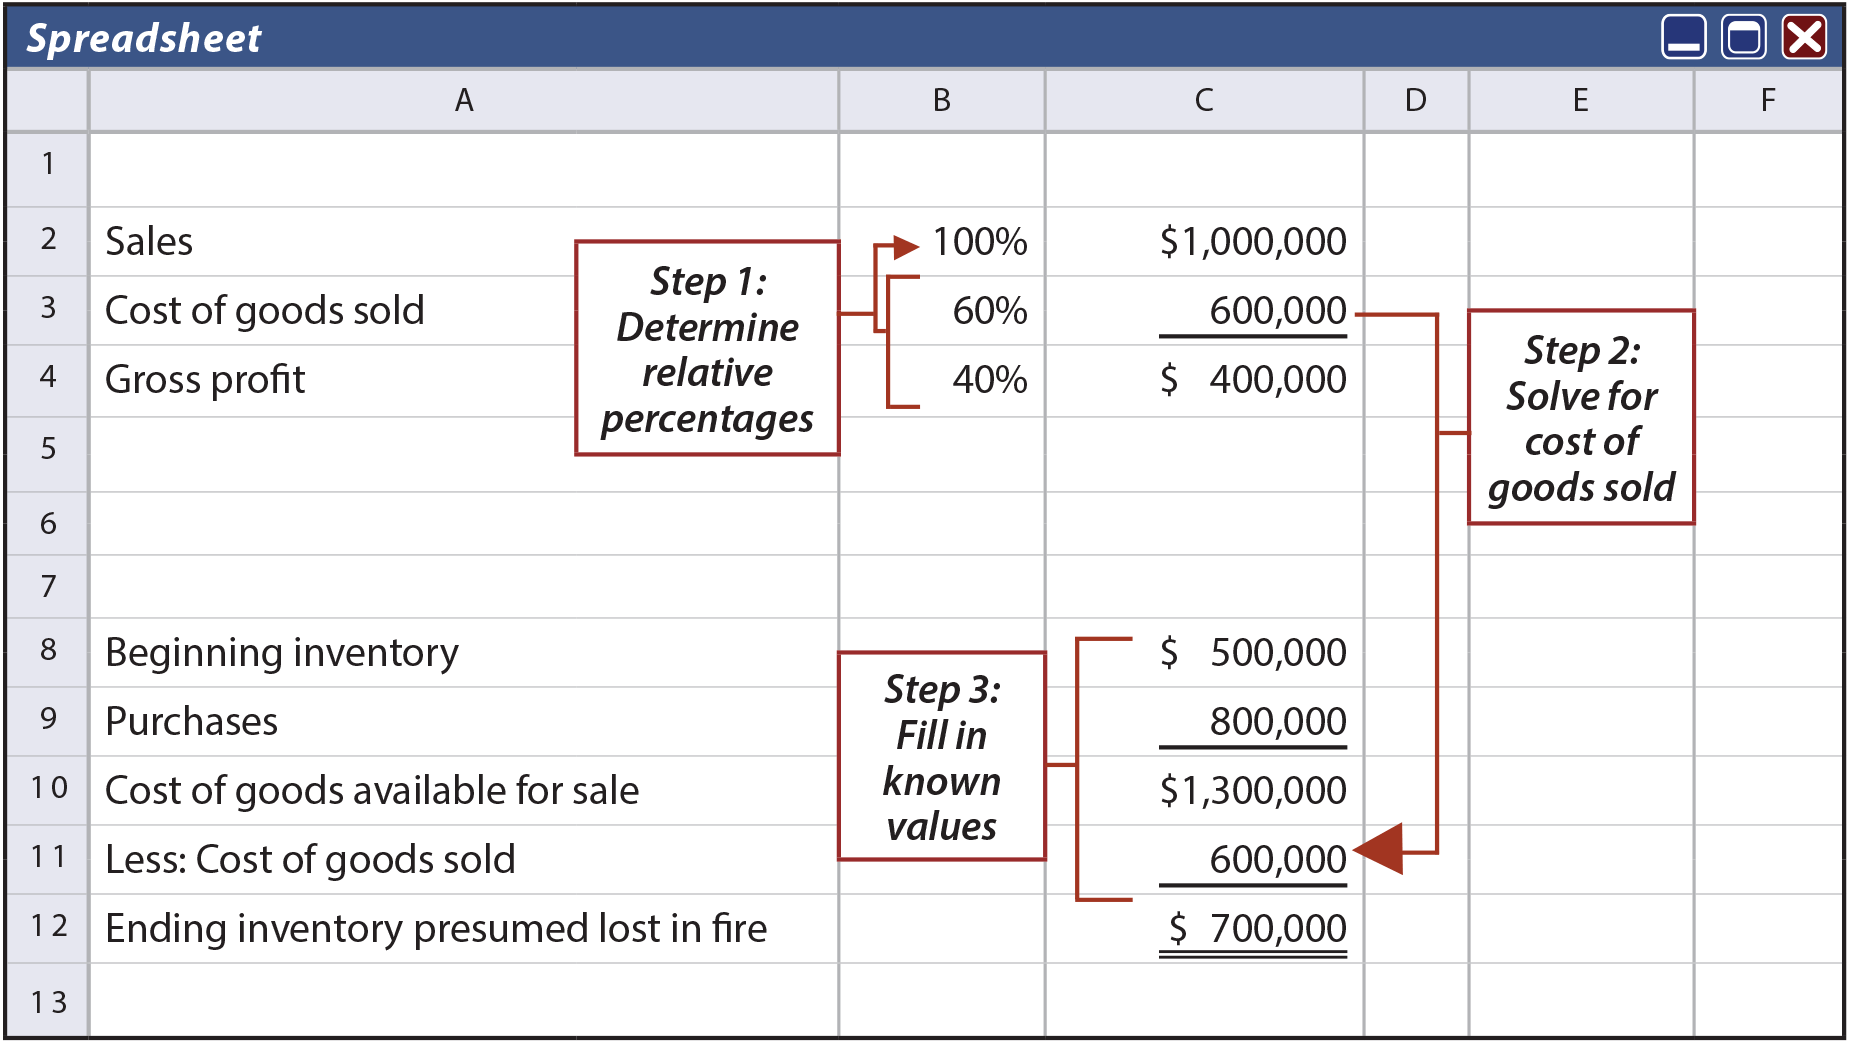 Gross Profit Spreadsheet example